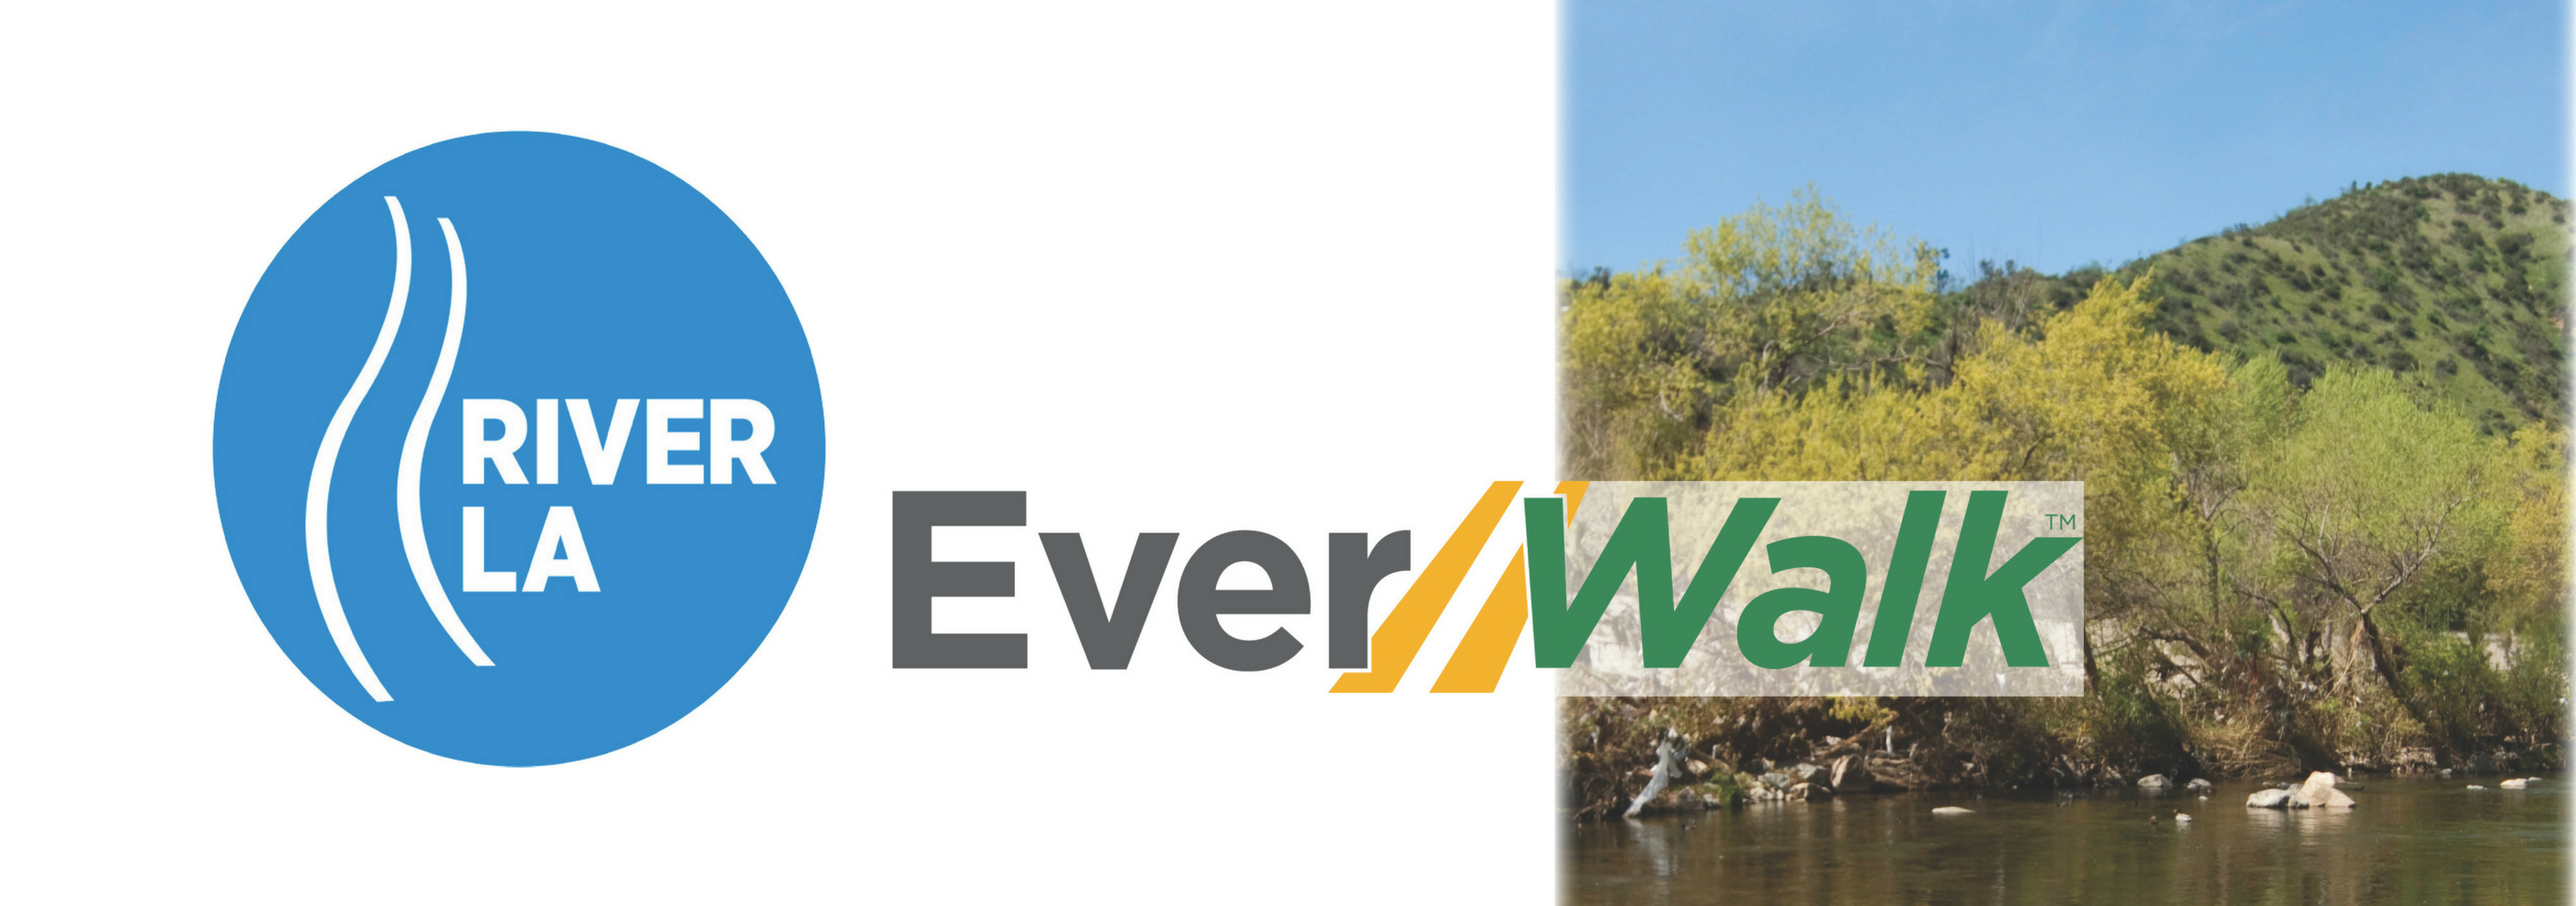 Everwalk_website_banner.png